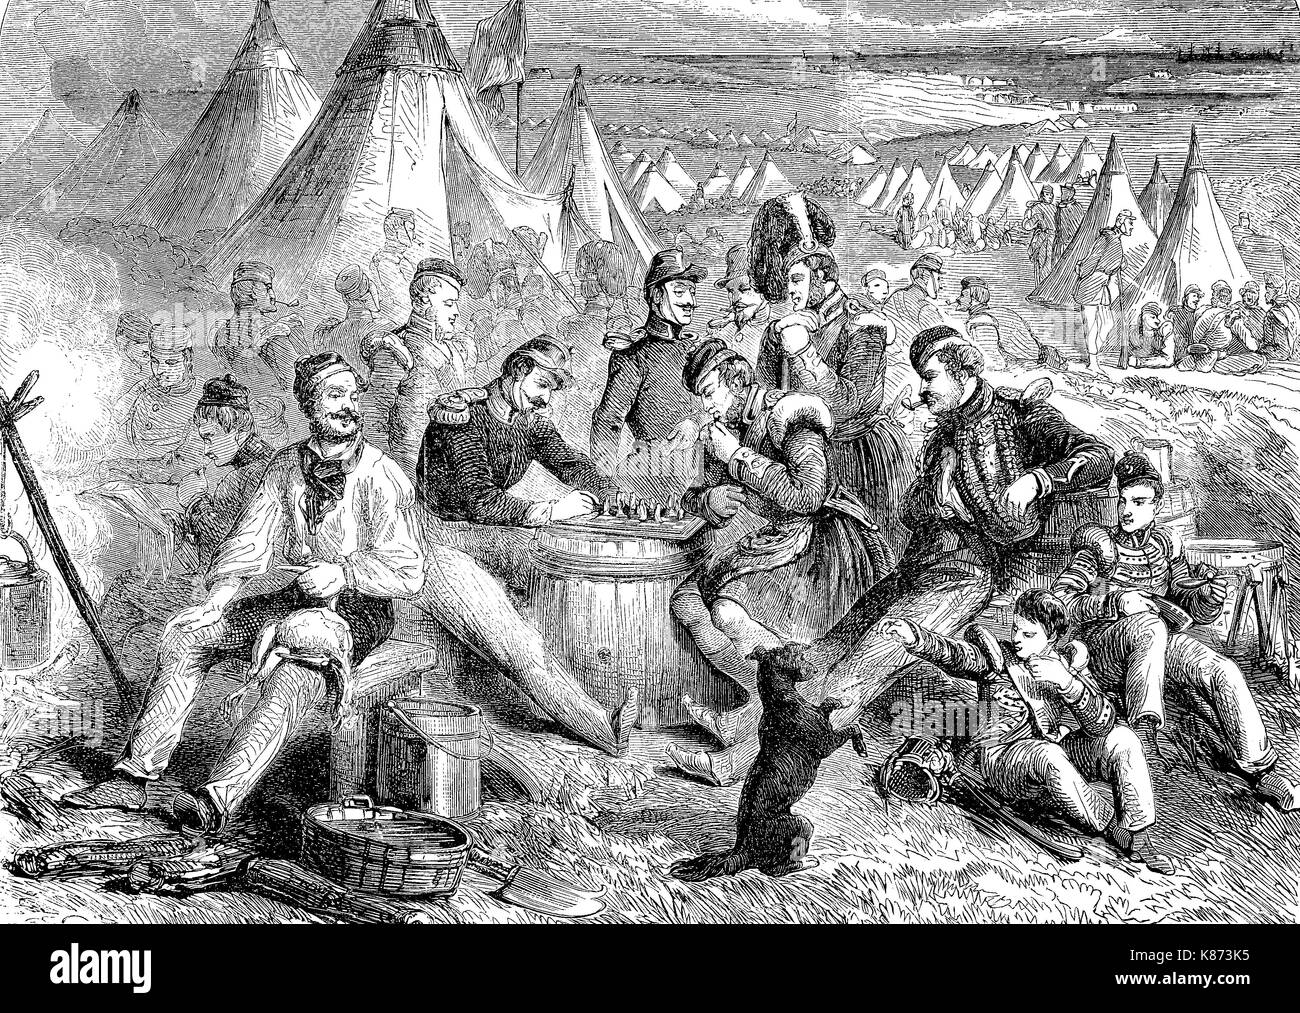 Crimean War 1853 - 1856, pastime and entertainment in the English camp at the Crimea, Digital improved reproduction of an original woodprint from the 19th century - Stock Image